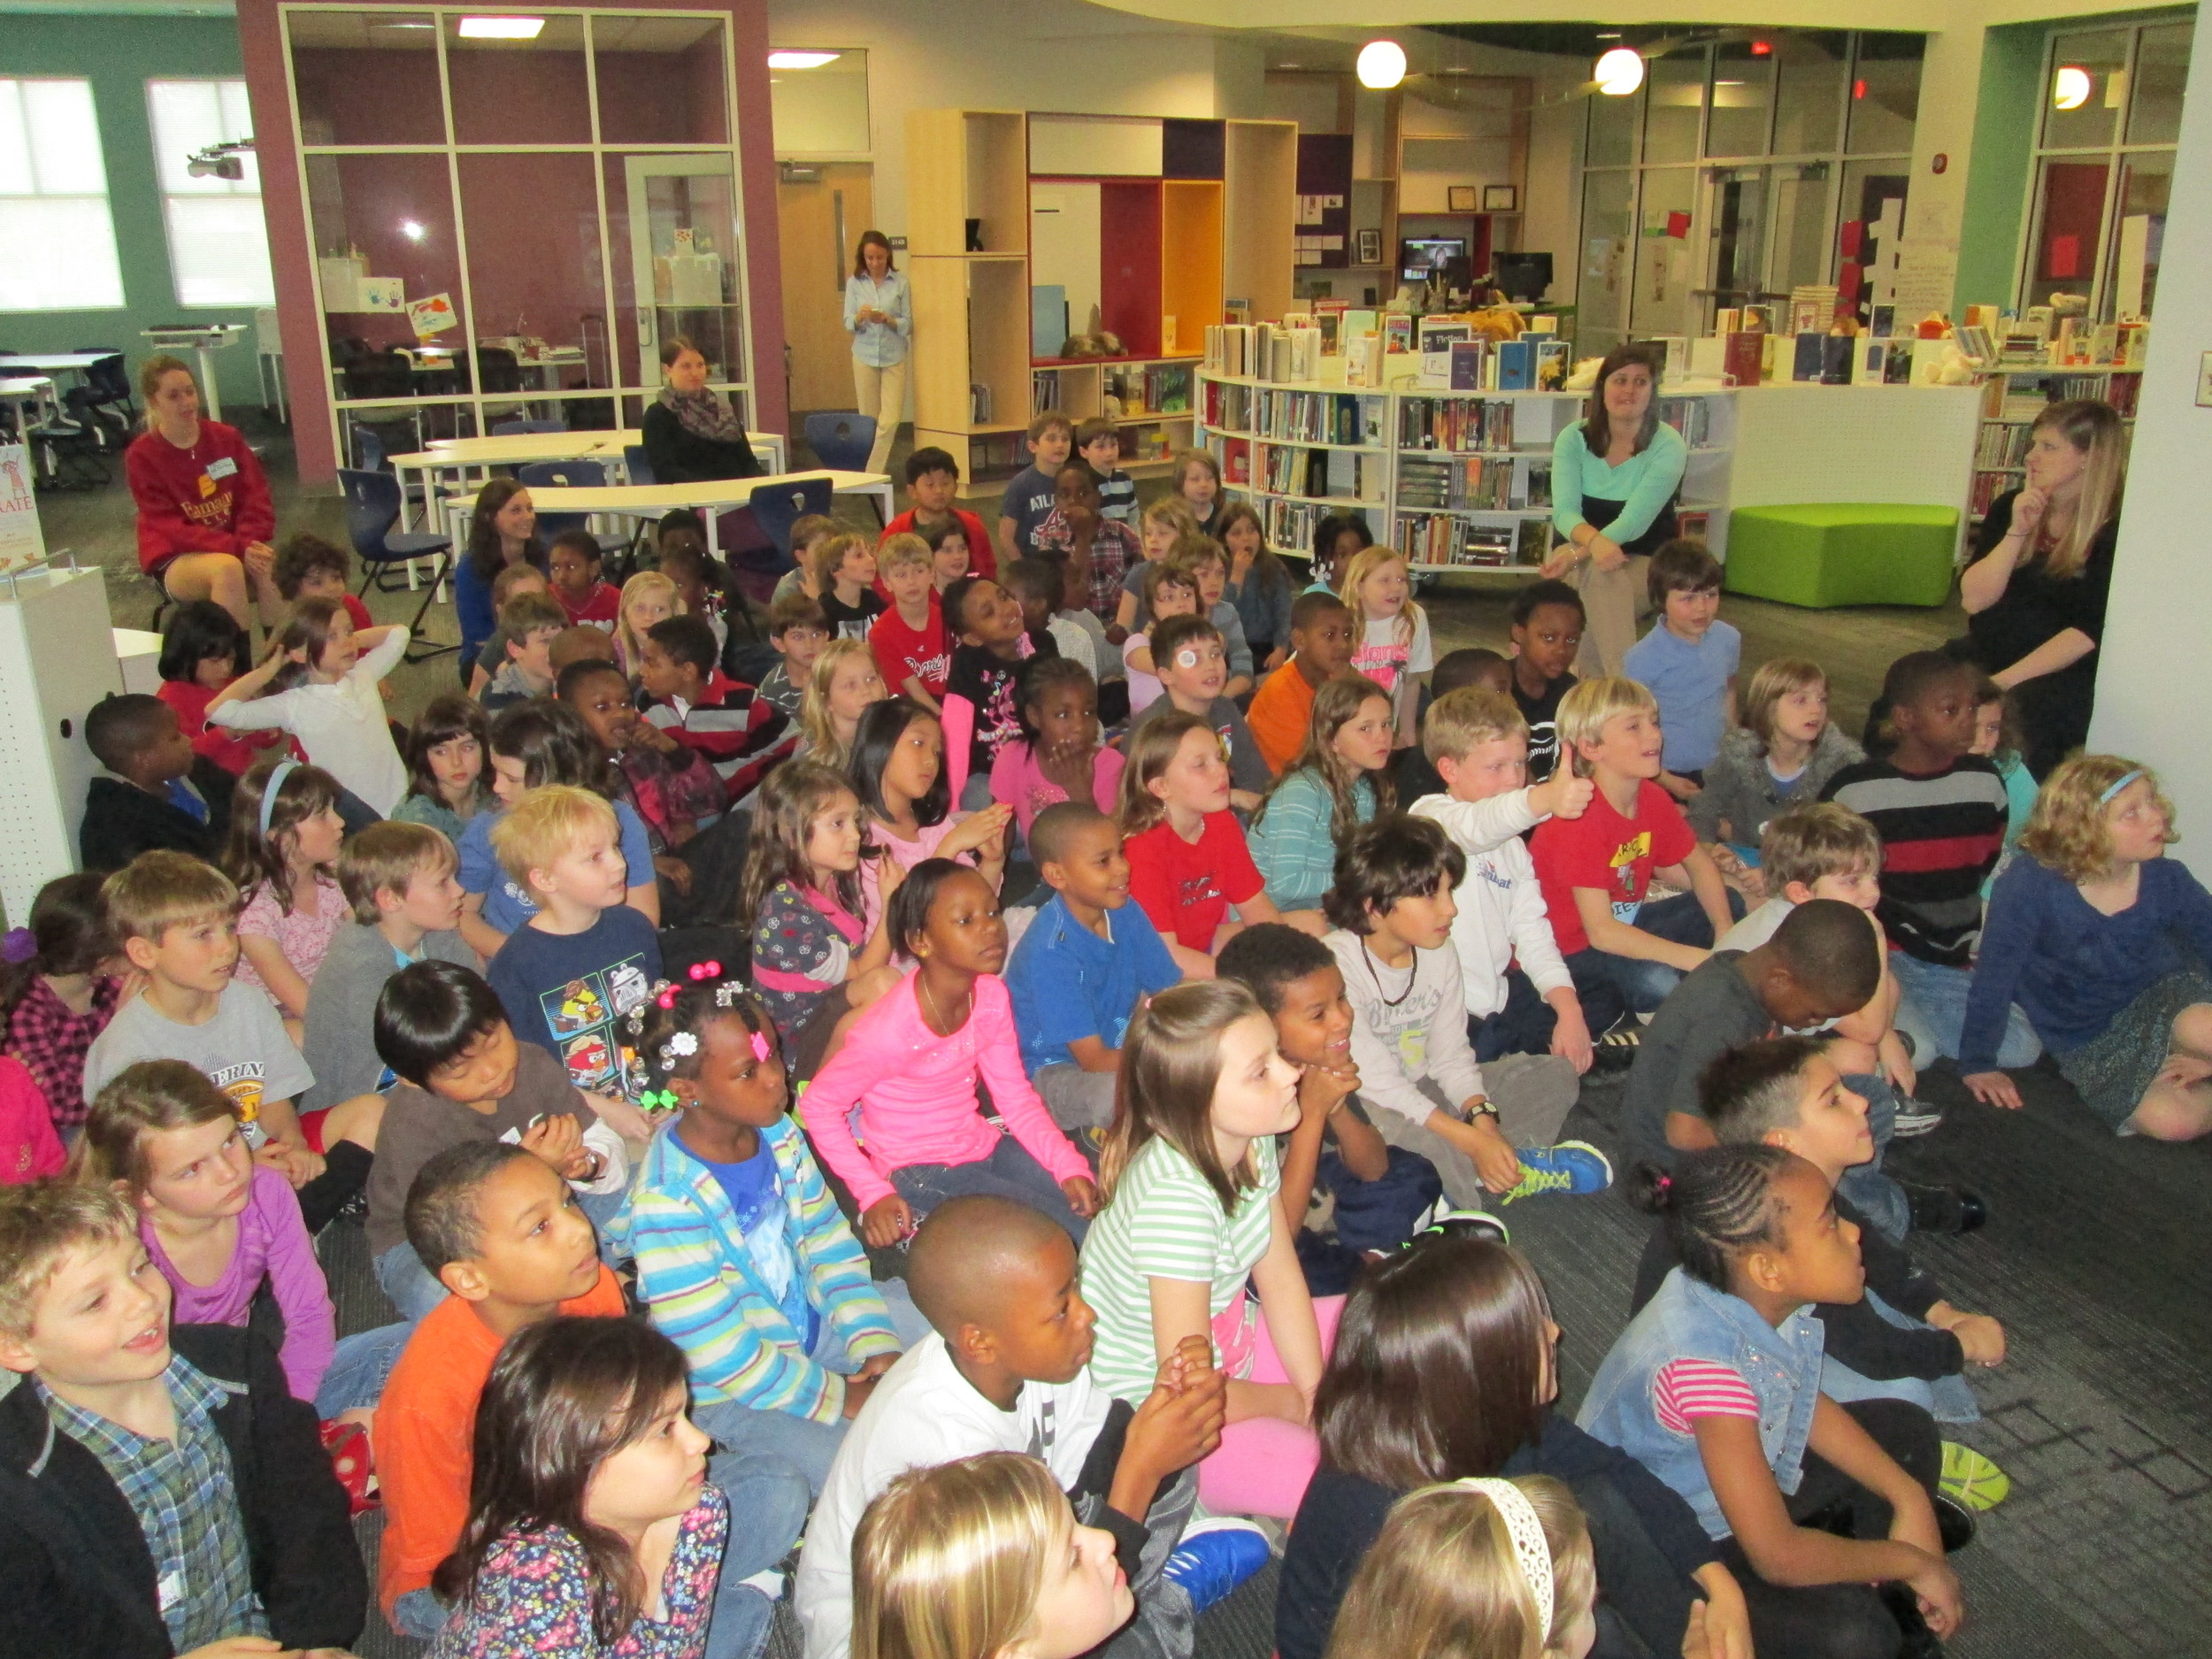 2nd graders at David C. Barrow Elementary School (photo courtesy: Andy Plemmons)